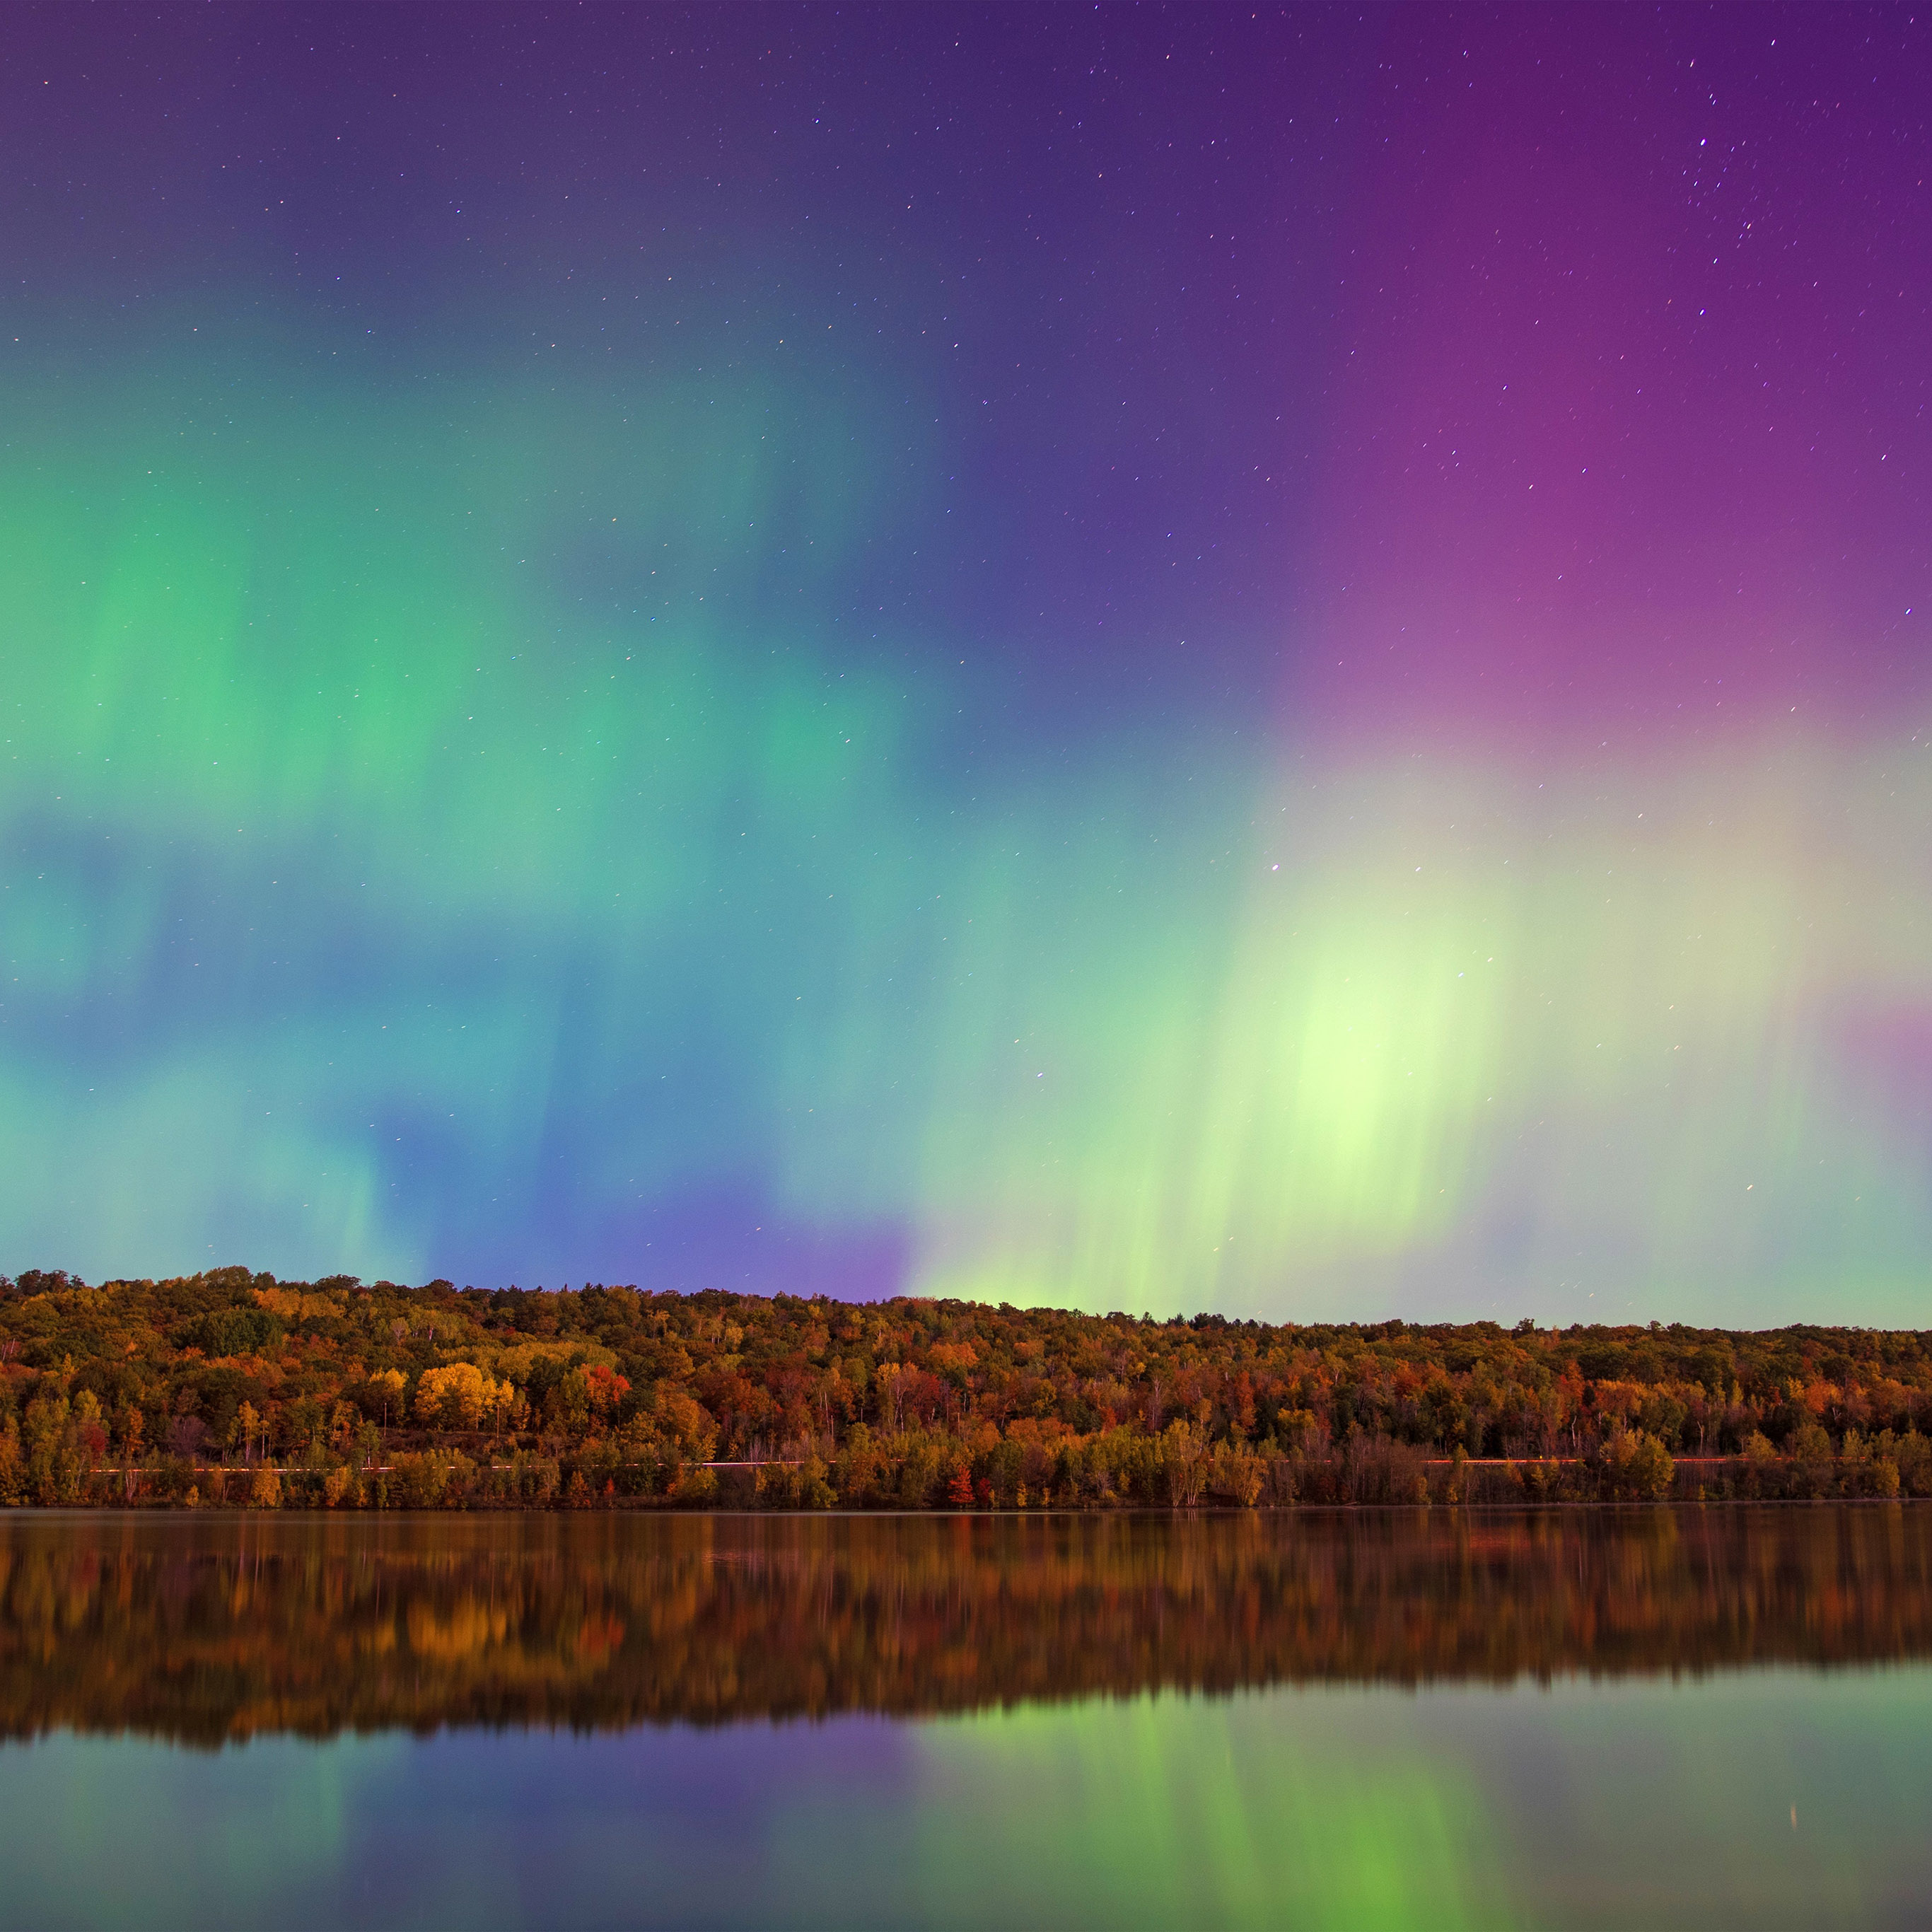 cool images lakes, northern, high resolution, lights ...  Night Sky Aurora Colorado